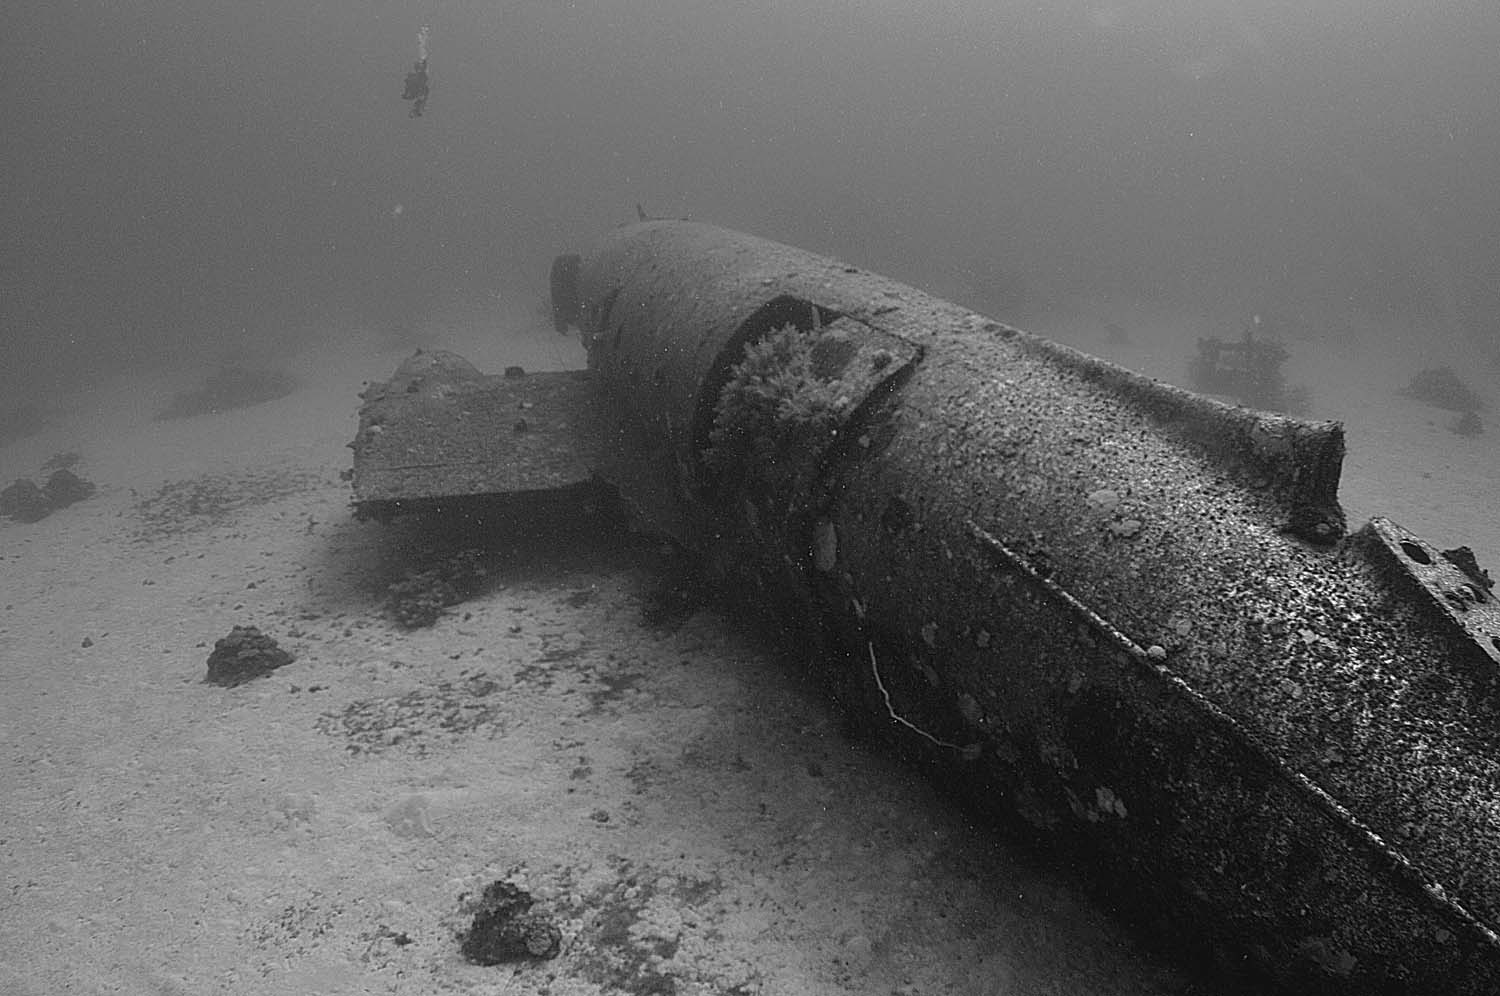 Side view of the Commando wreck